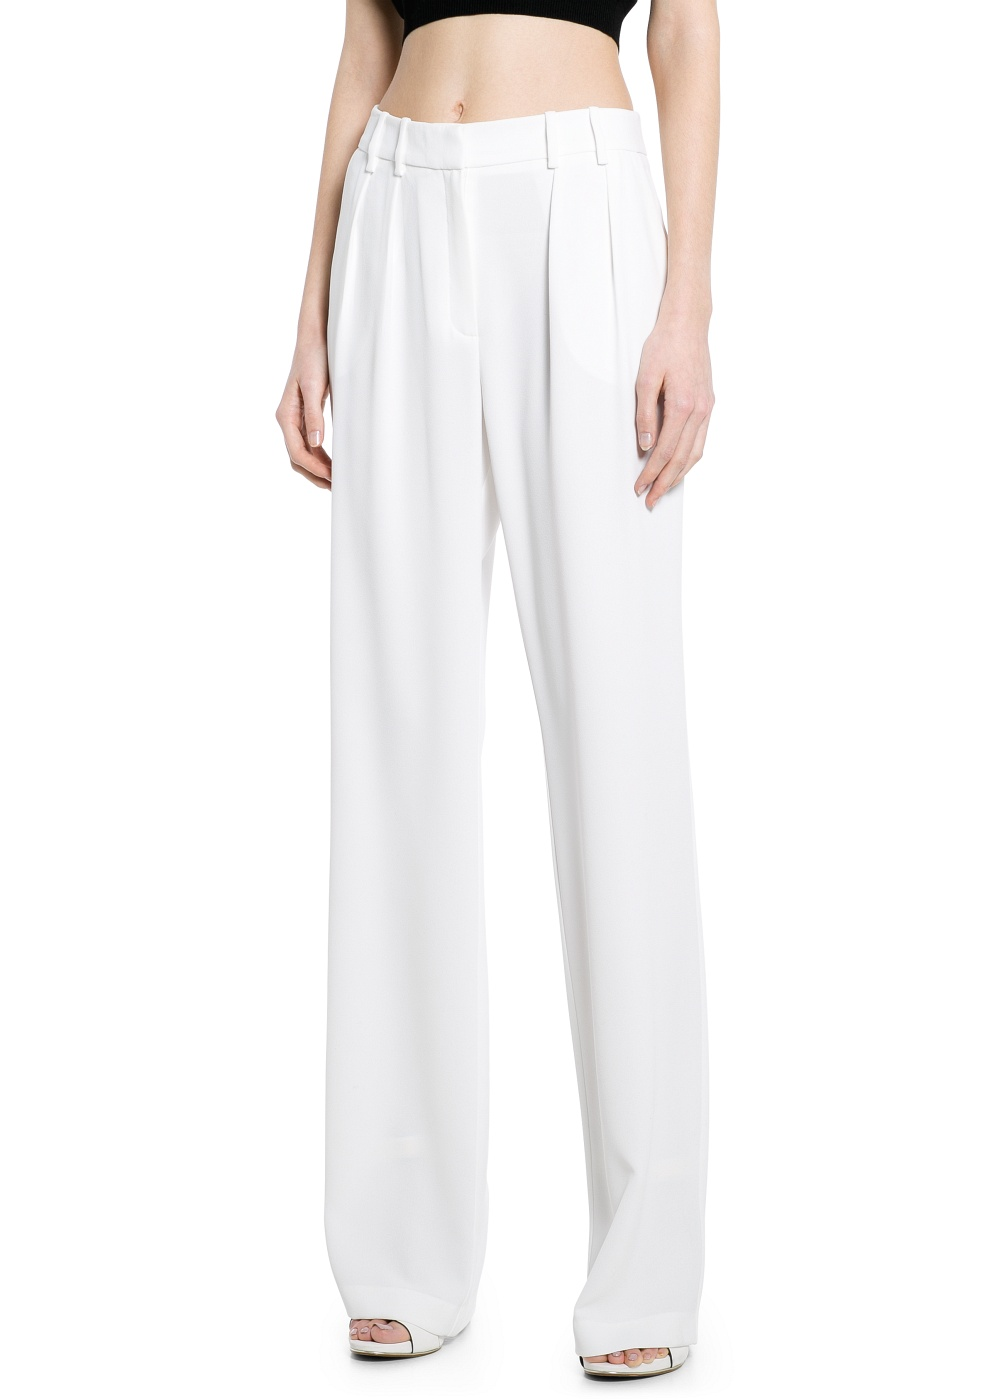 MANGO - CLOTHING - Skirts - Pleated crepe trousers